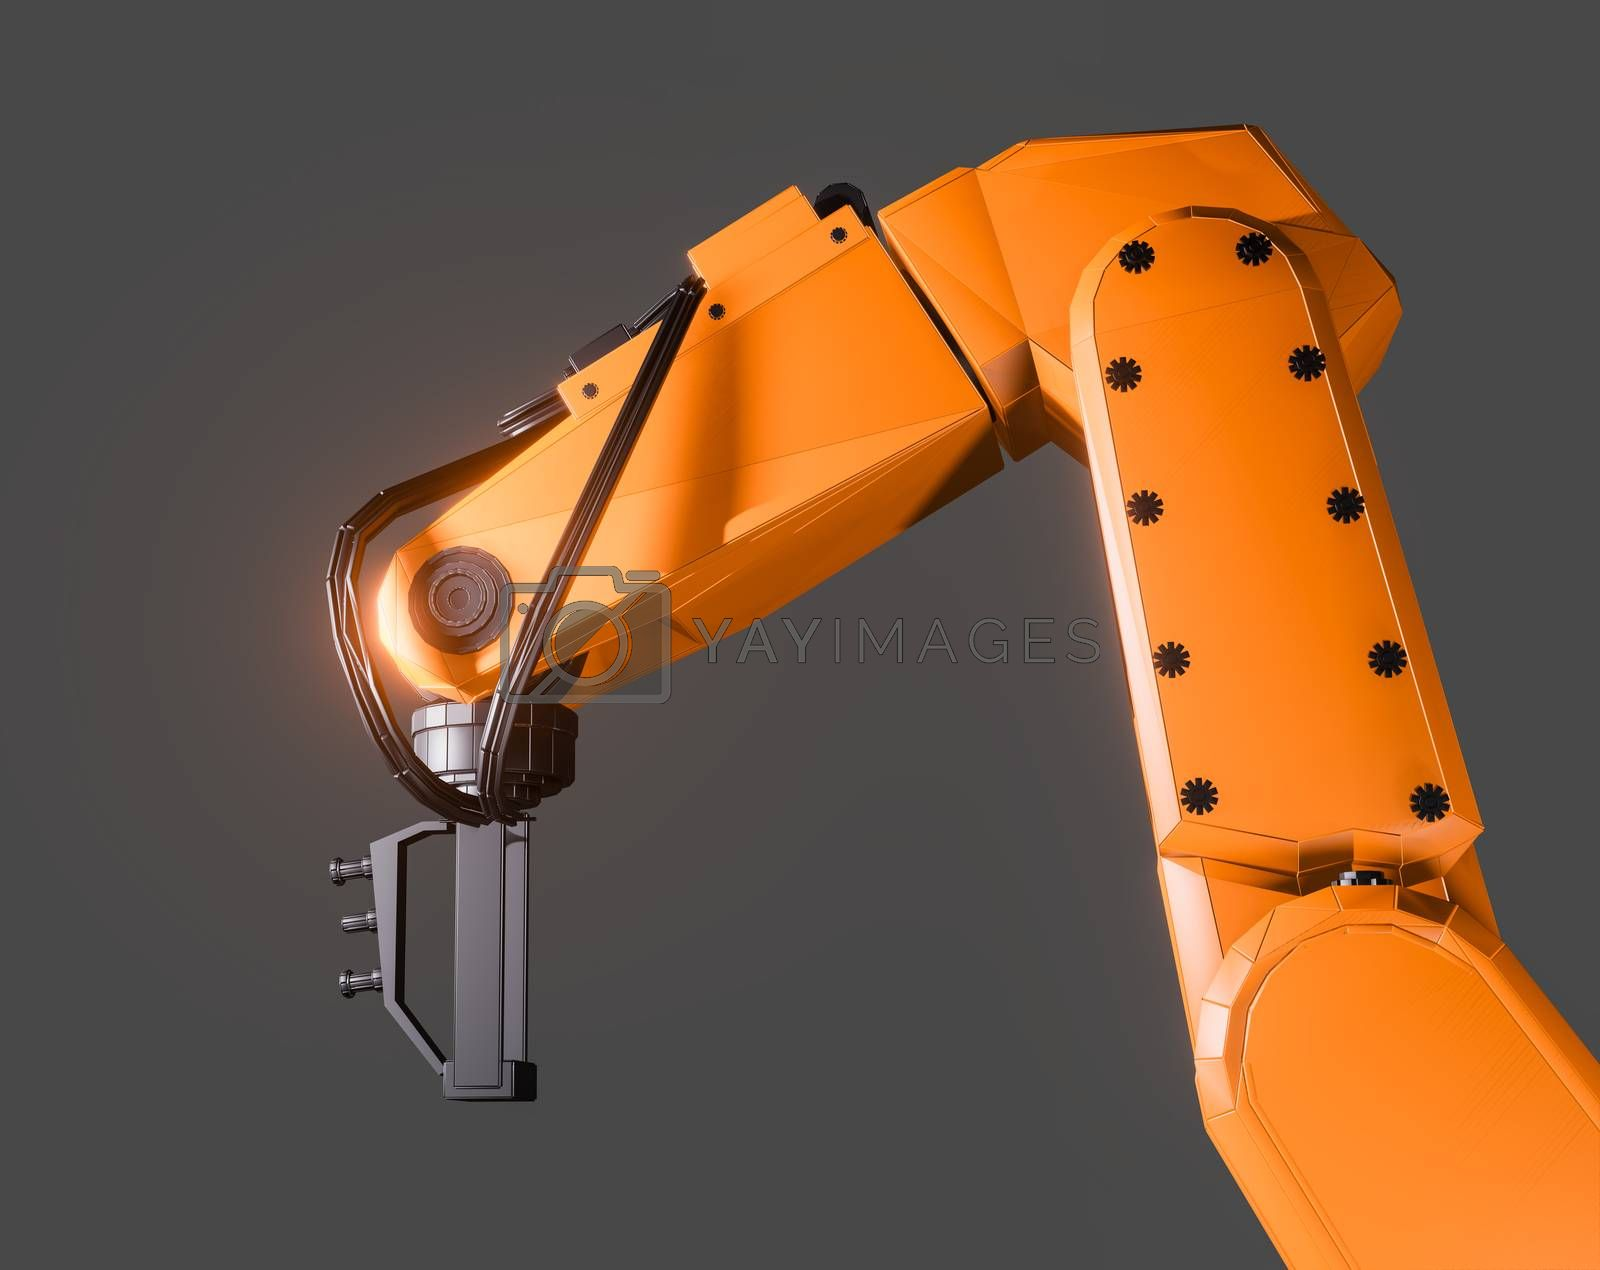 Industrial robotic arm isolated on grey background. 3D illustration